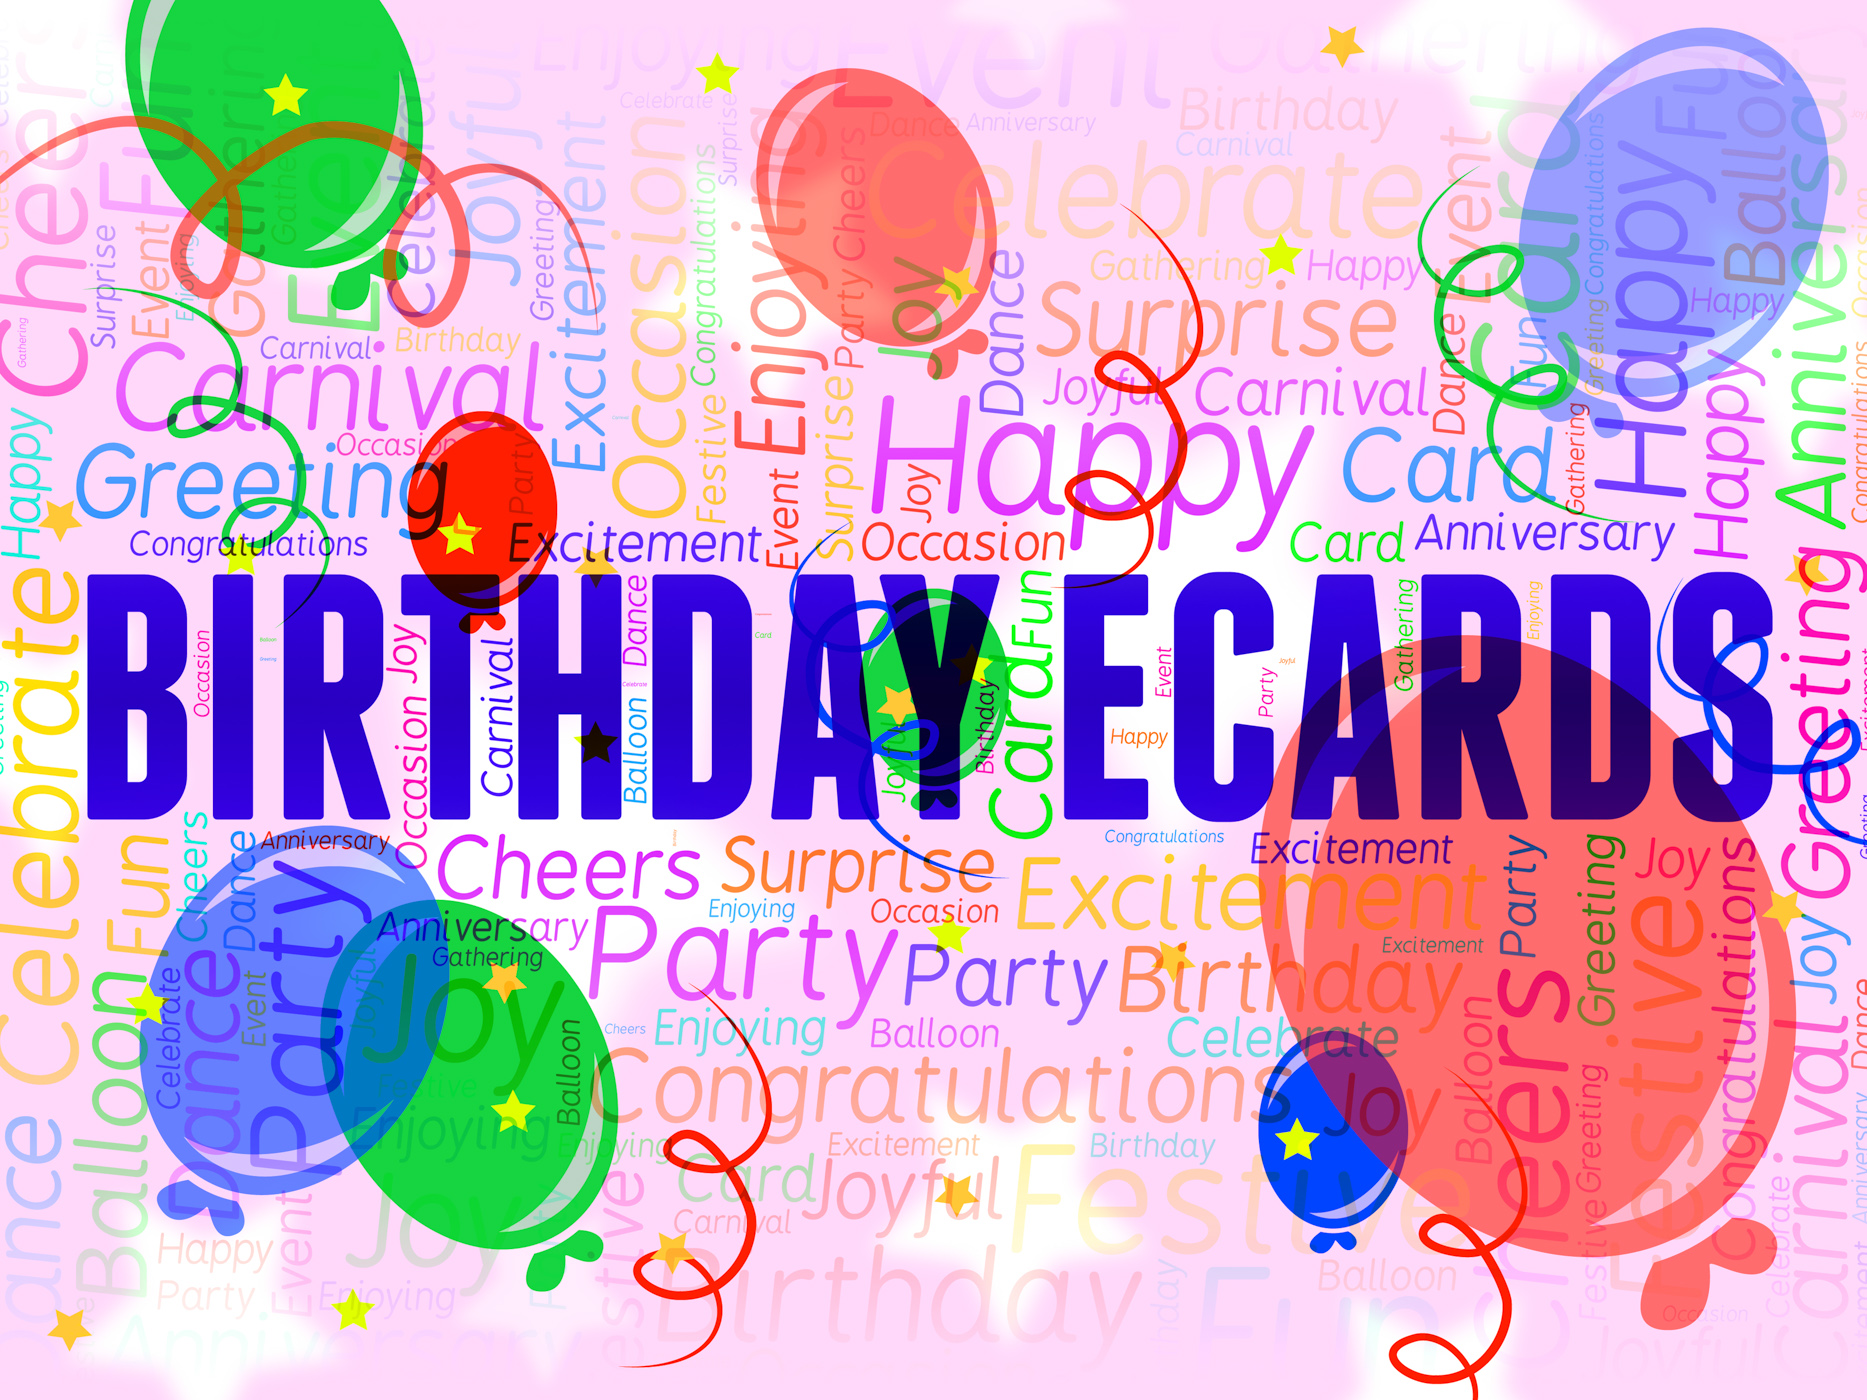 Birthday Ecards Represents Www Celebration And Internet Happybirthday Happiness Greetings